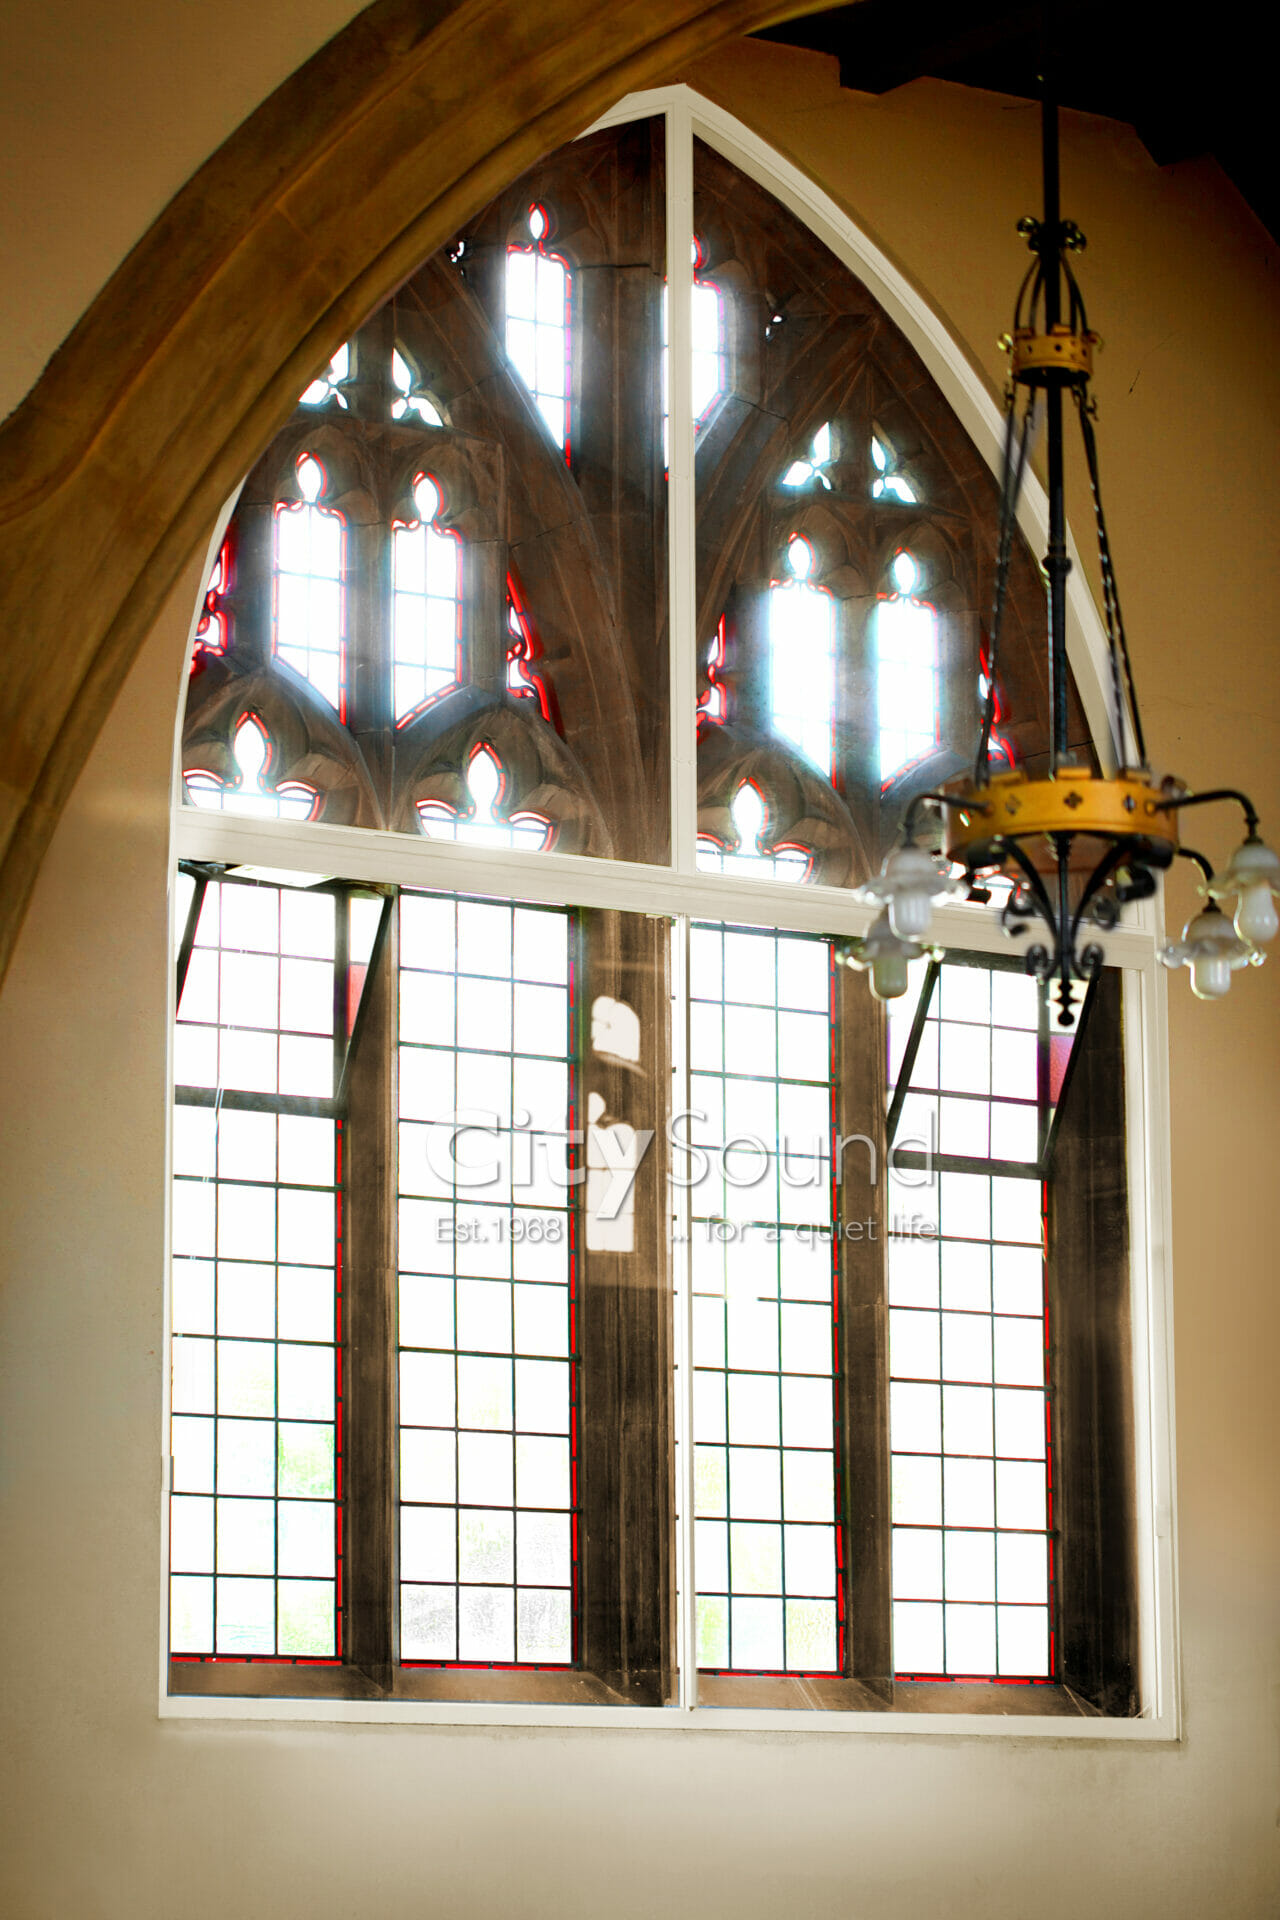 13. Sliding windows and gothic arches done in a Church. For thermal insulation (London) (2)